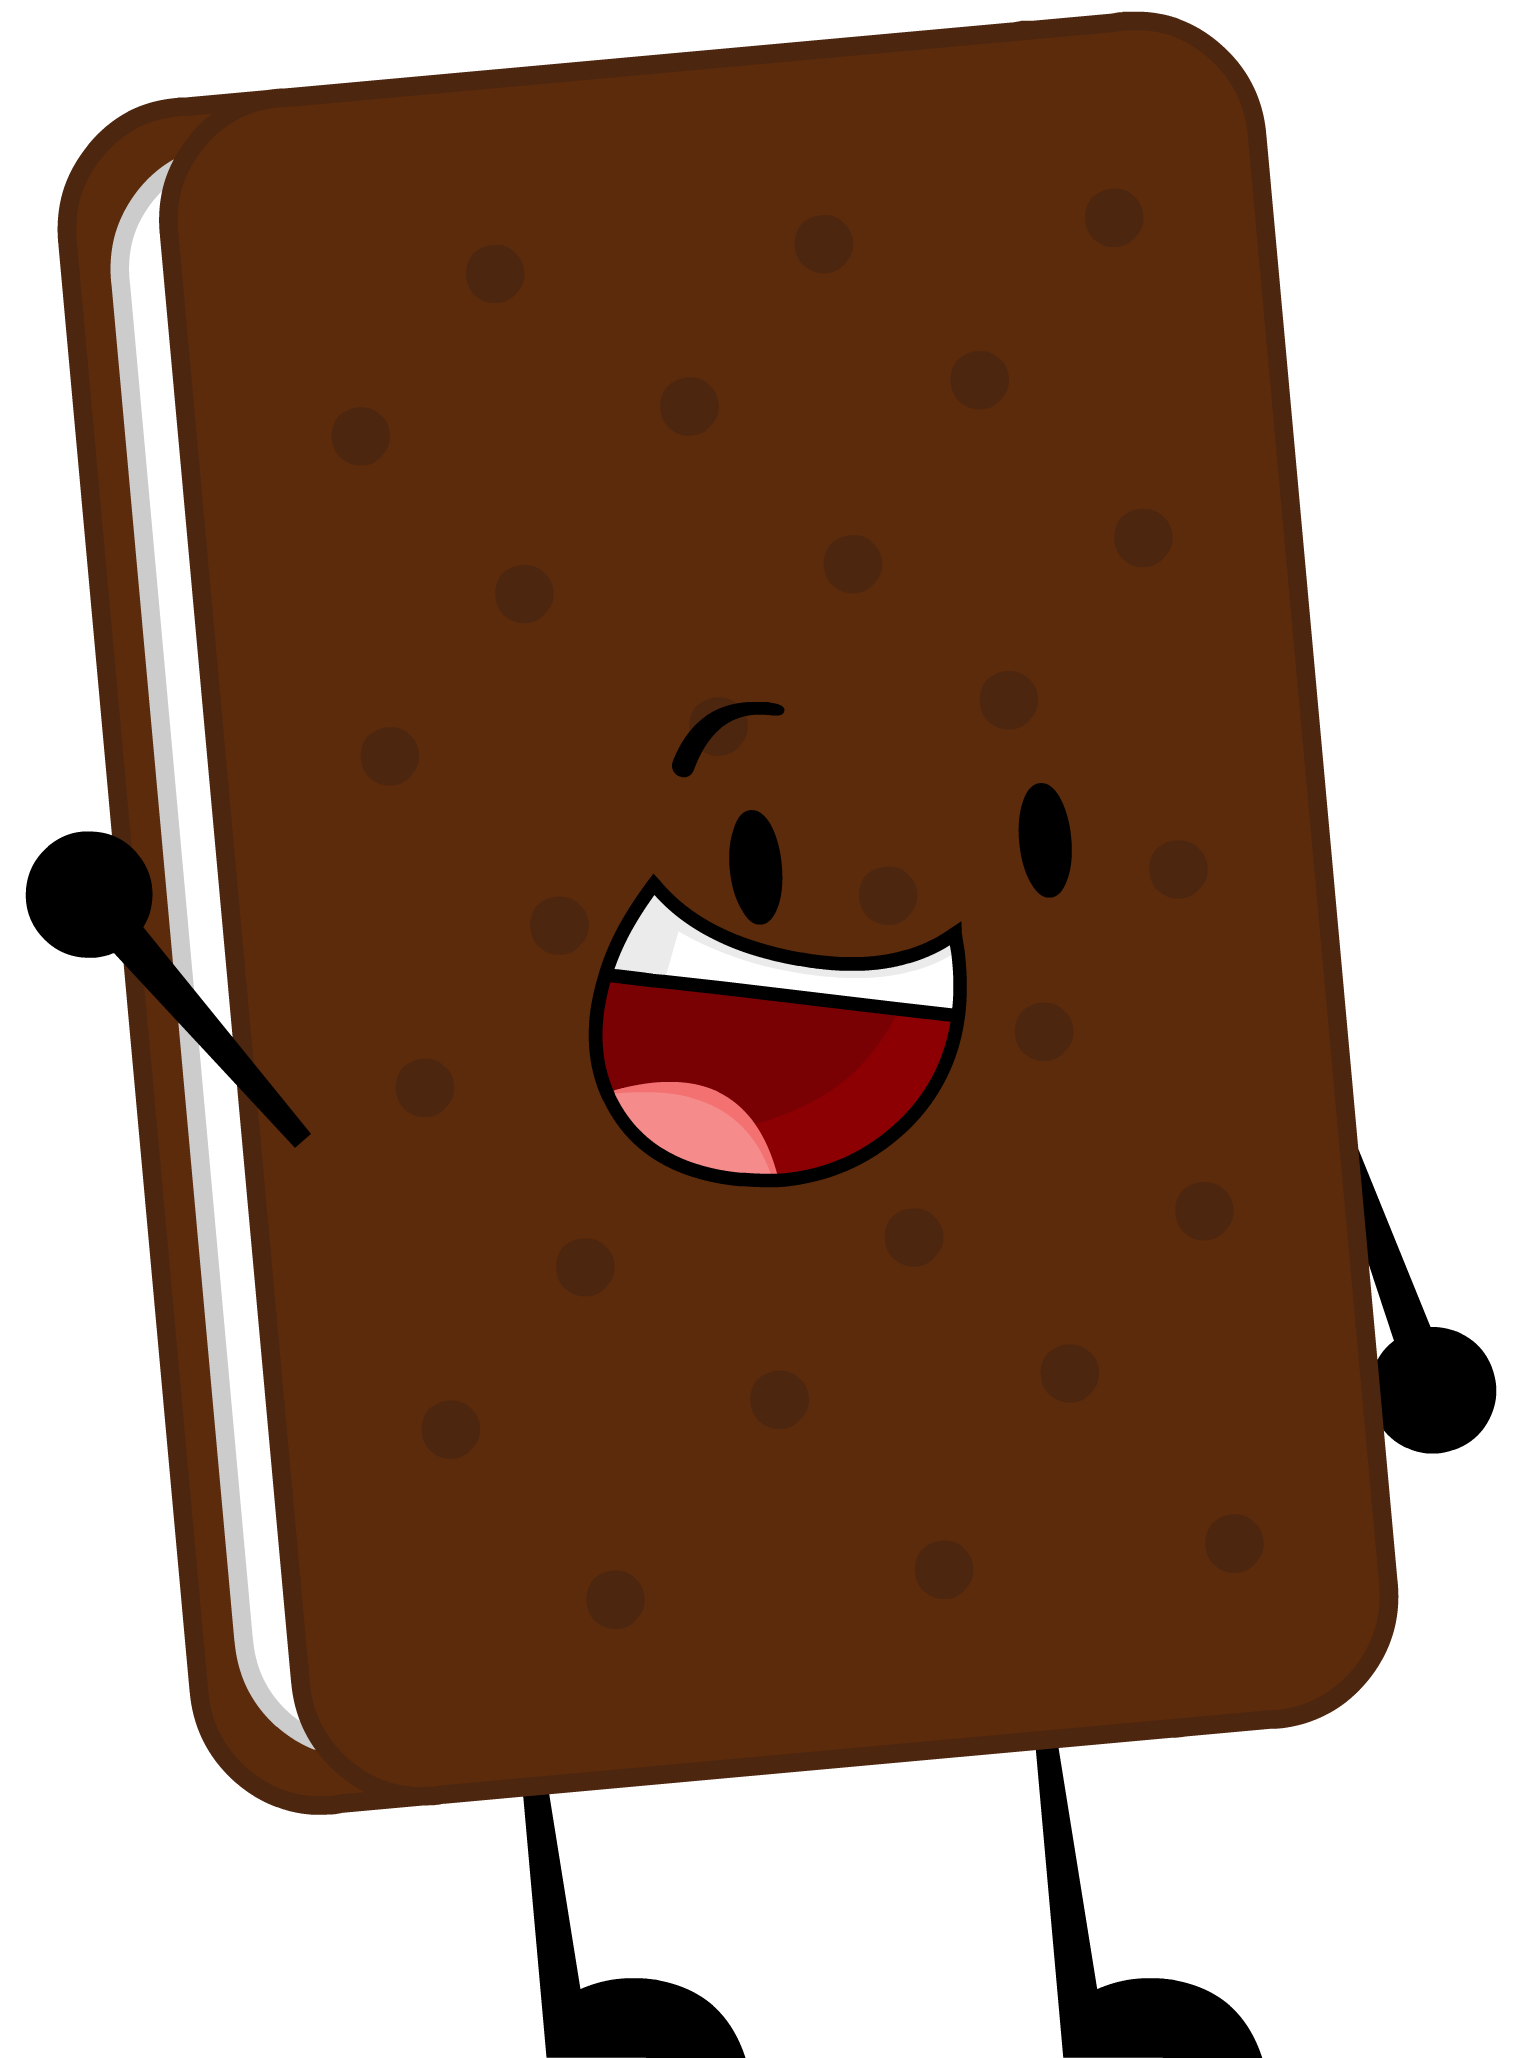 2015IceCreamSandwich.png